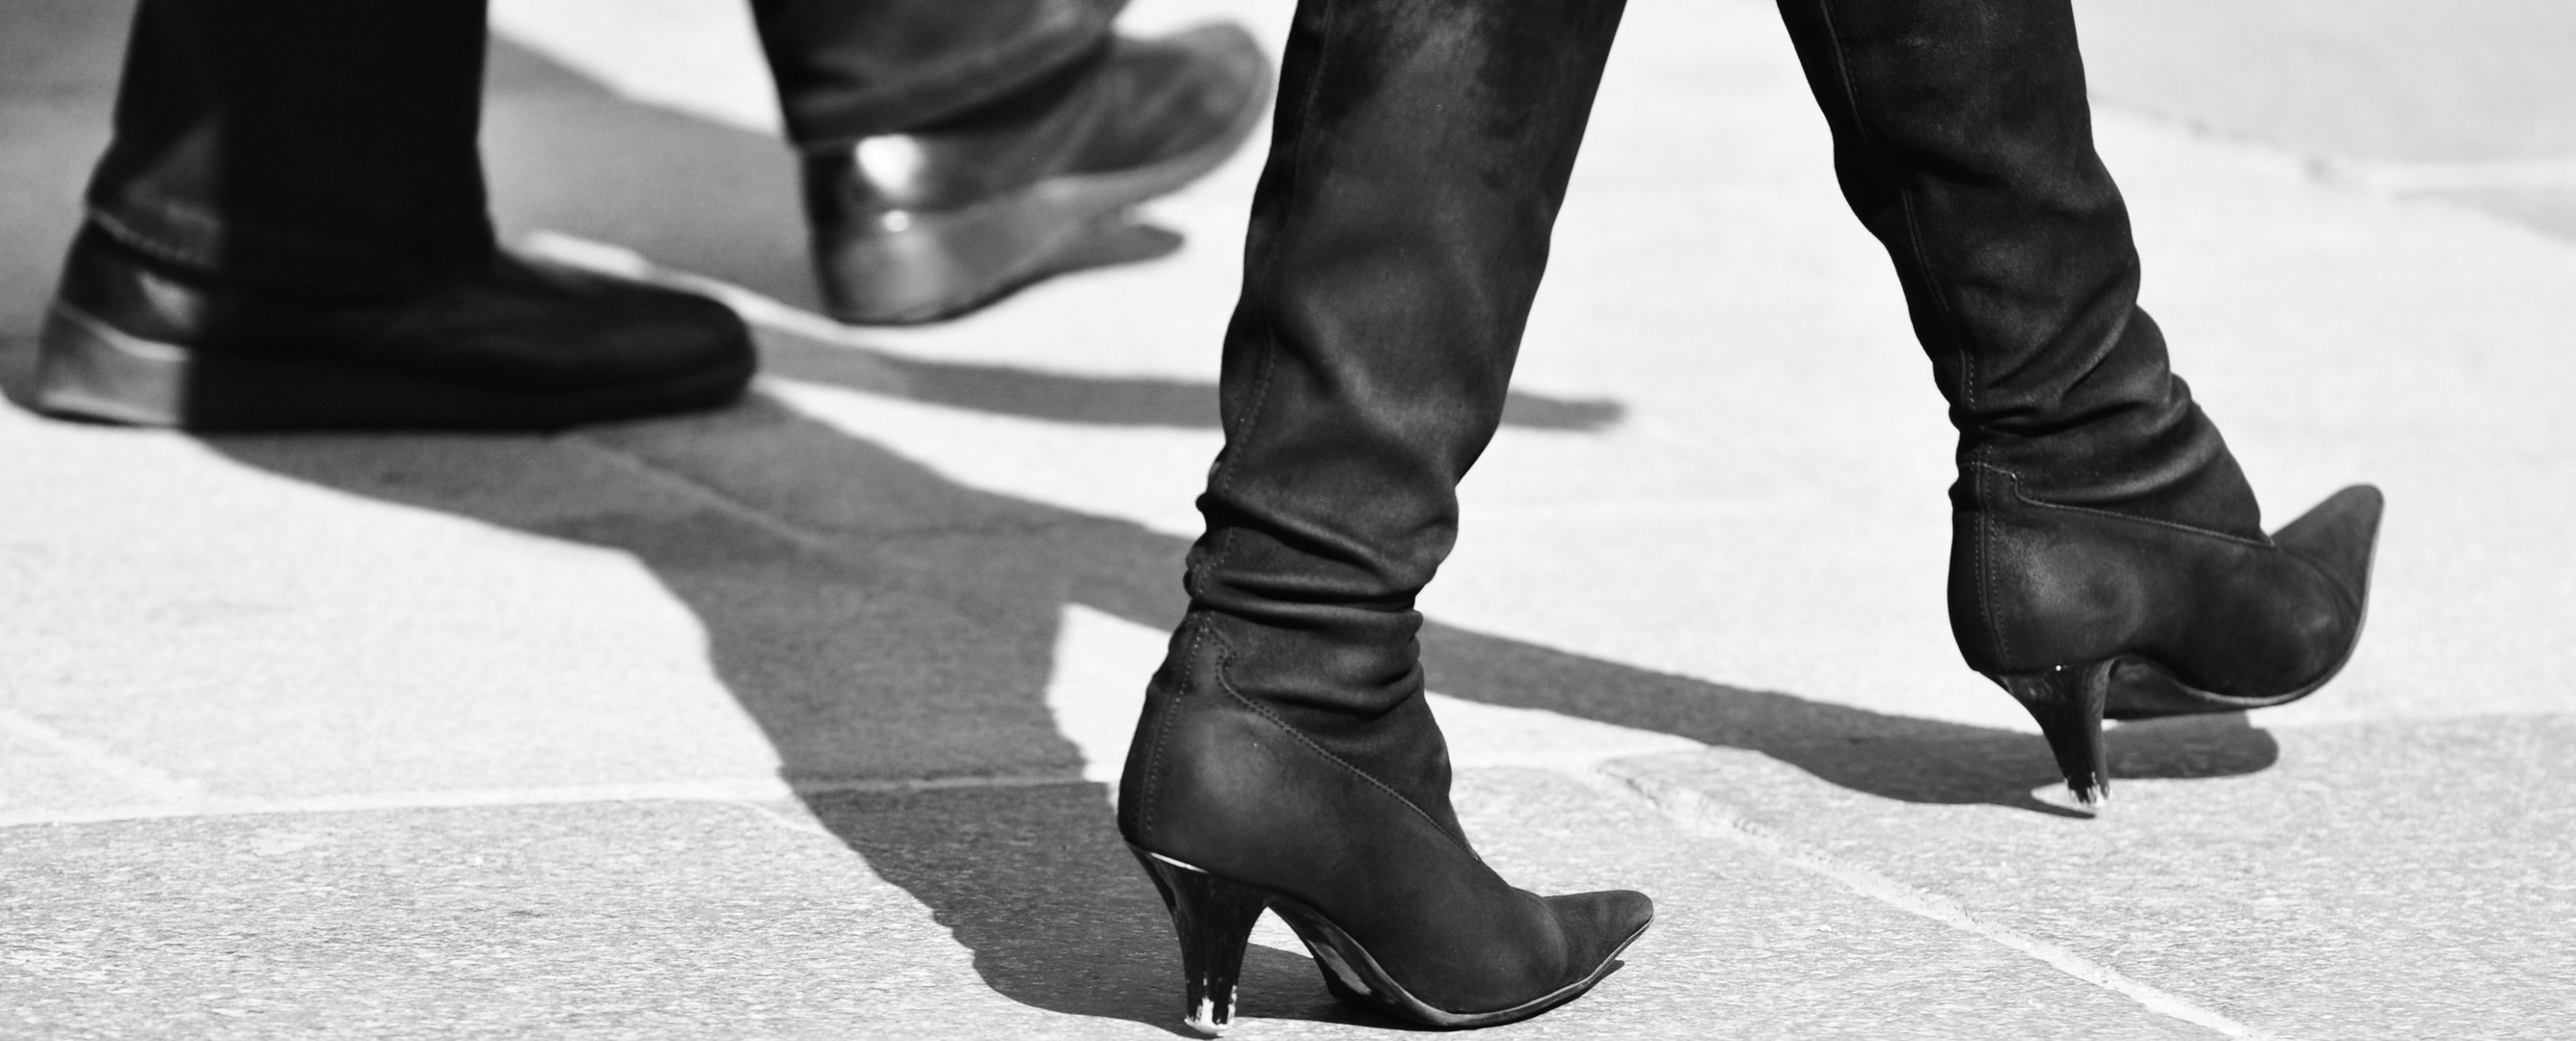 ... these boots are made for walking...